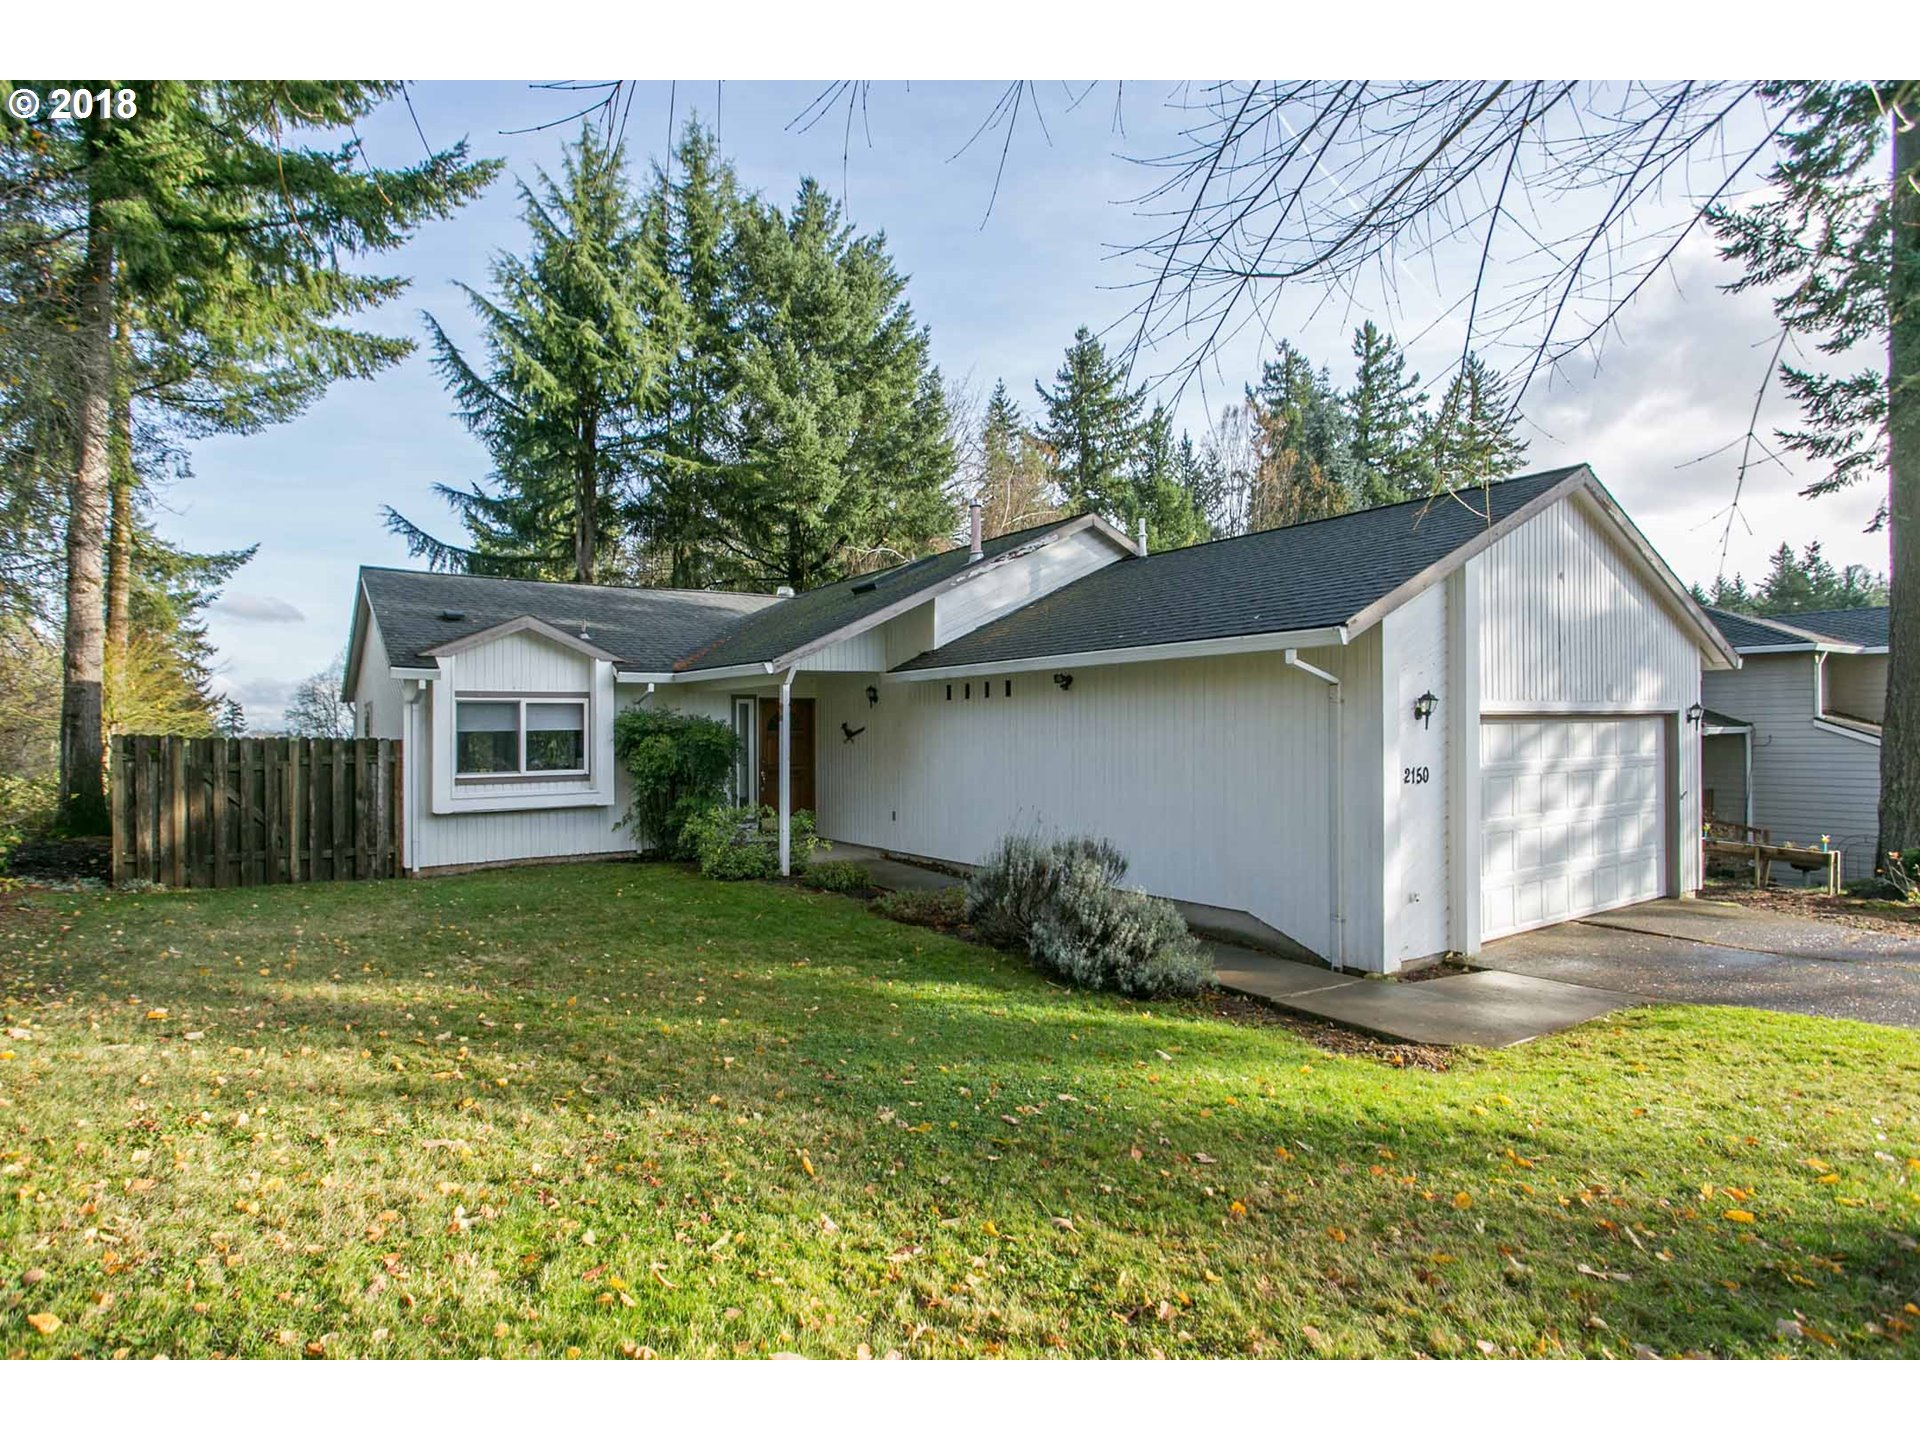 2150 HIDDEN SPRINGS CT, West Linn, OR 97068